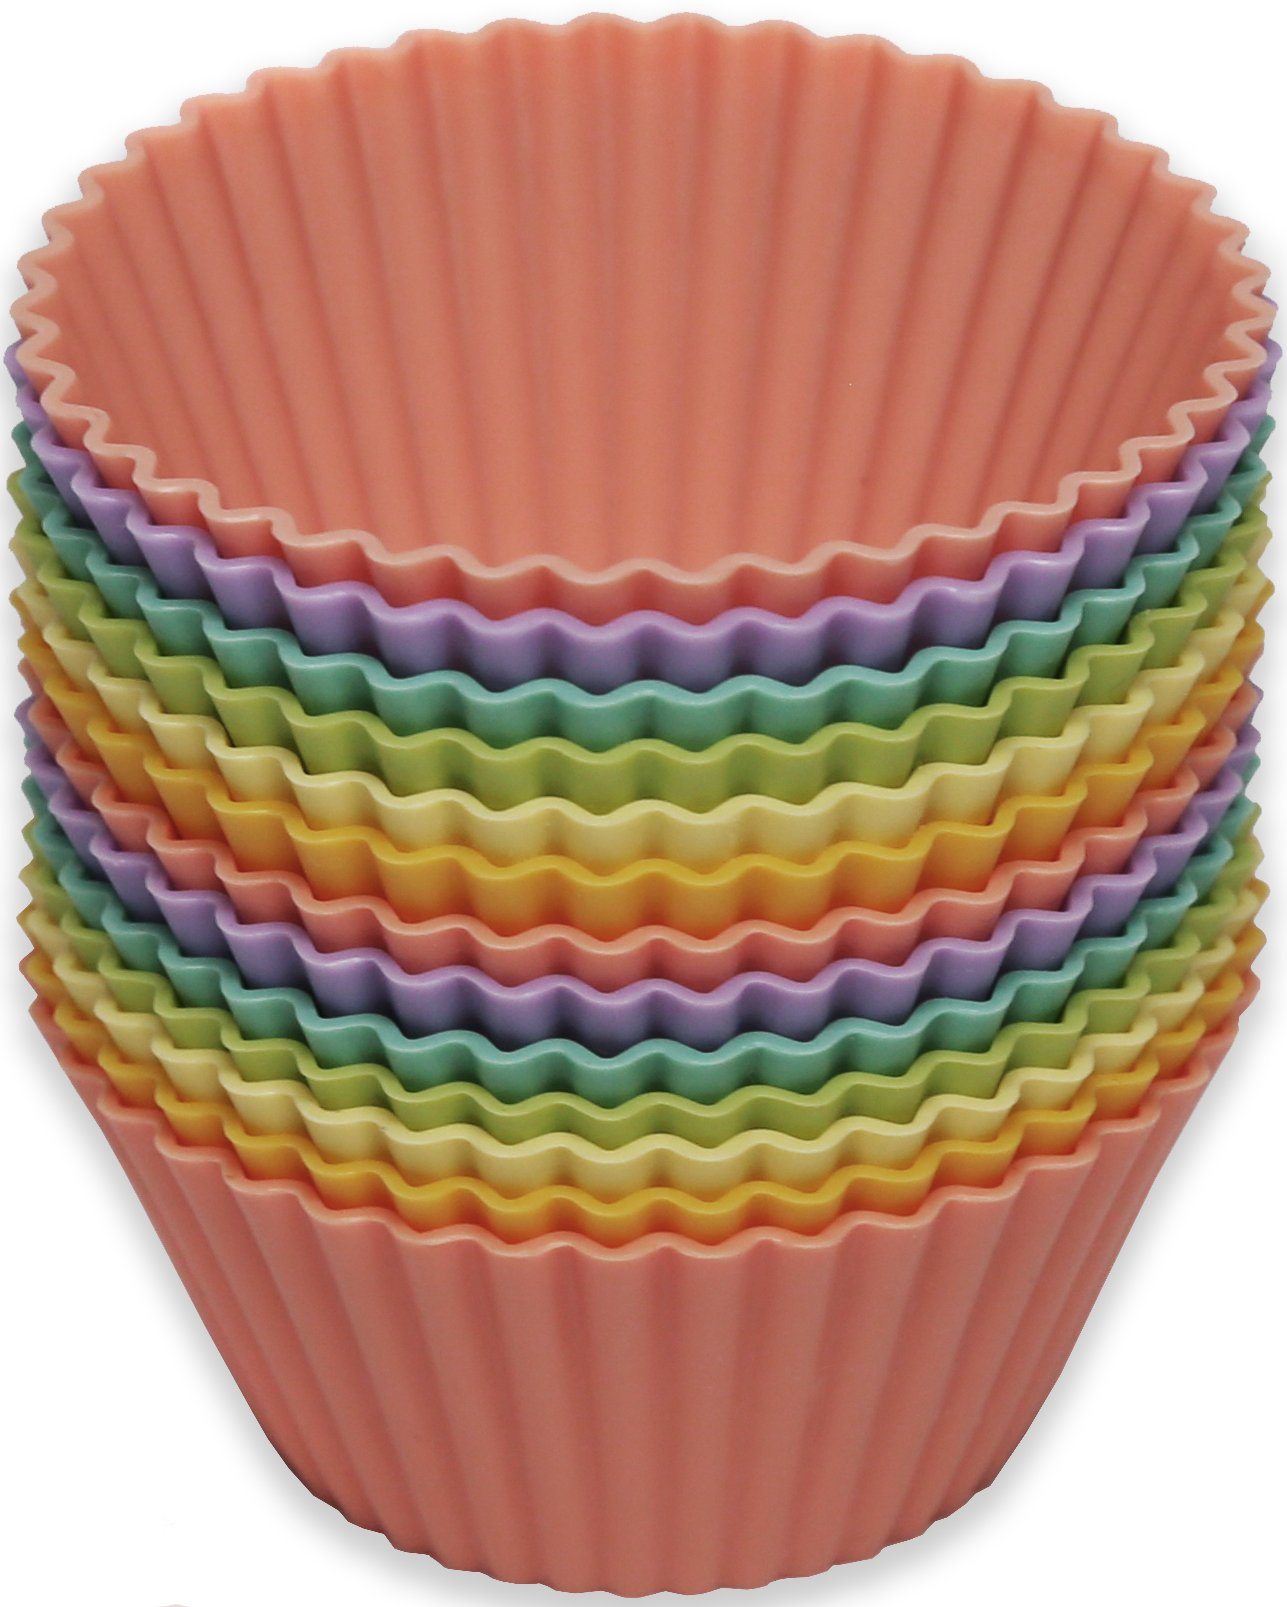 Silicone Baking Cups/13 Reusable Nonstick Cupcake Liners/Premium Muffin Molds - Stand Alone Cupcake Holders - No BPA - Gift Set - 6 Designer Colors - Standard Size by Chambers Bay Baking Company (Image #2)